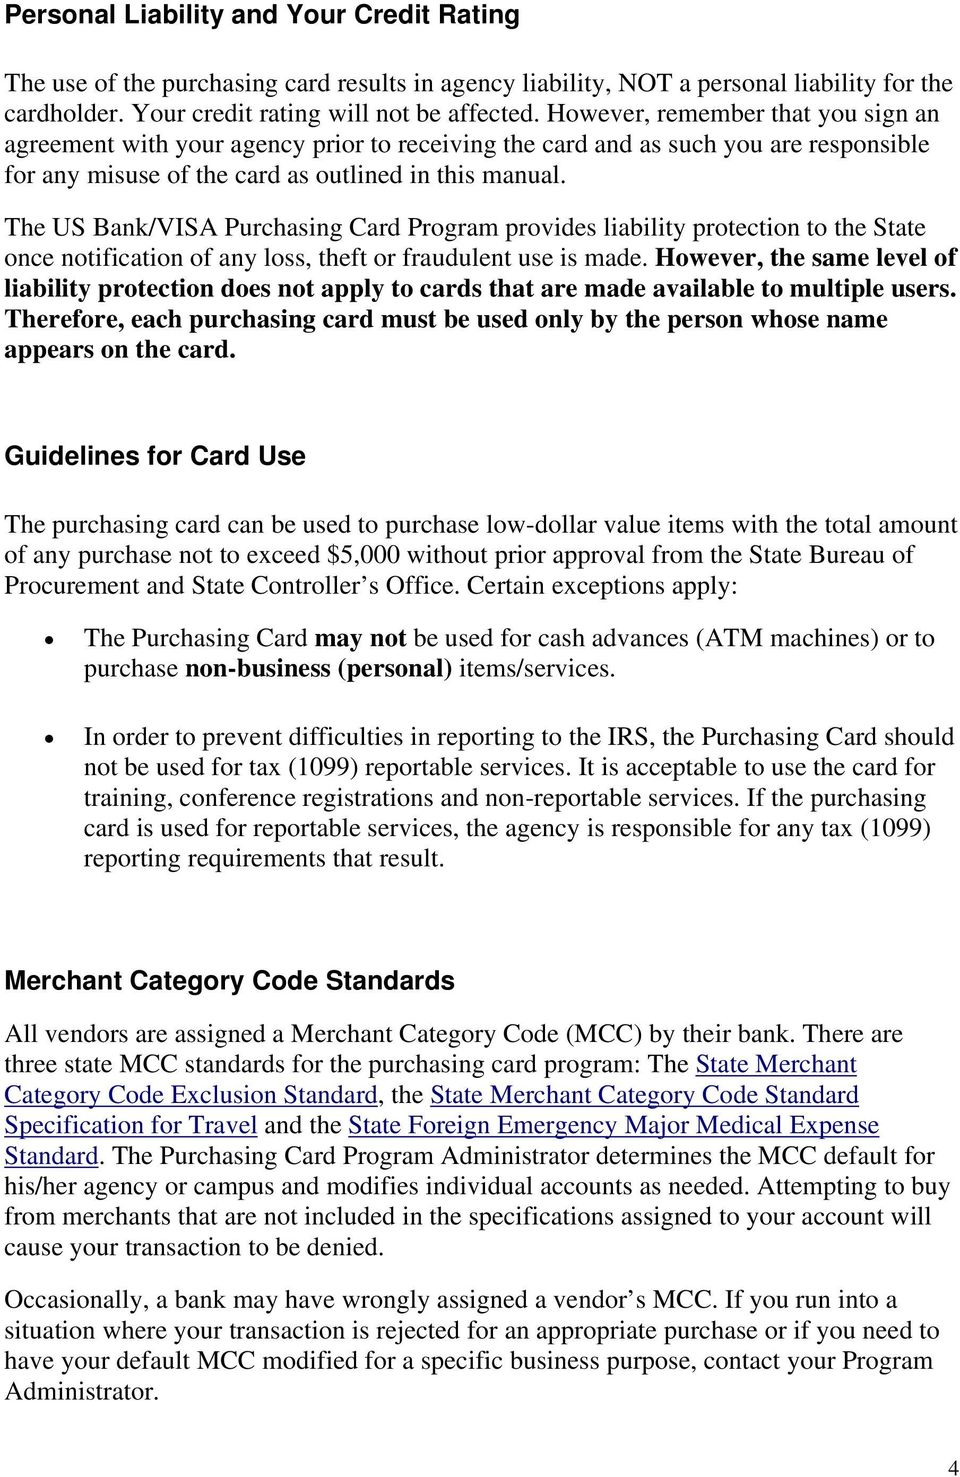 The US Bank/VISA Purchasing Card Program provides liability protection to the State once notification of any loss, theft or fraudulent use is made.